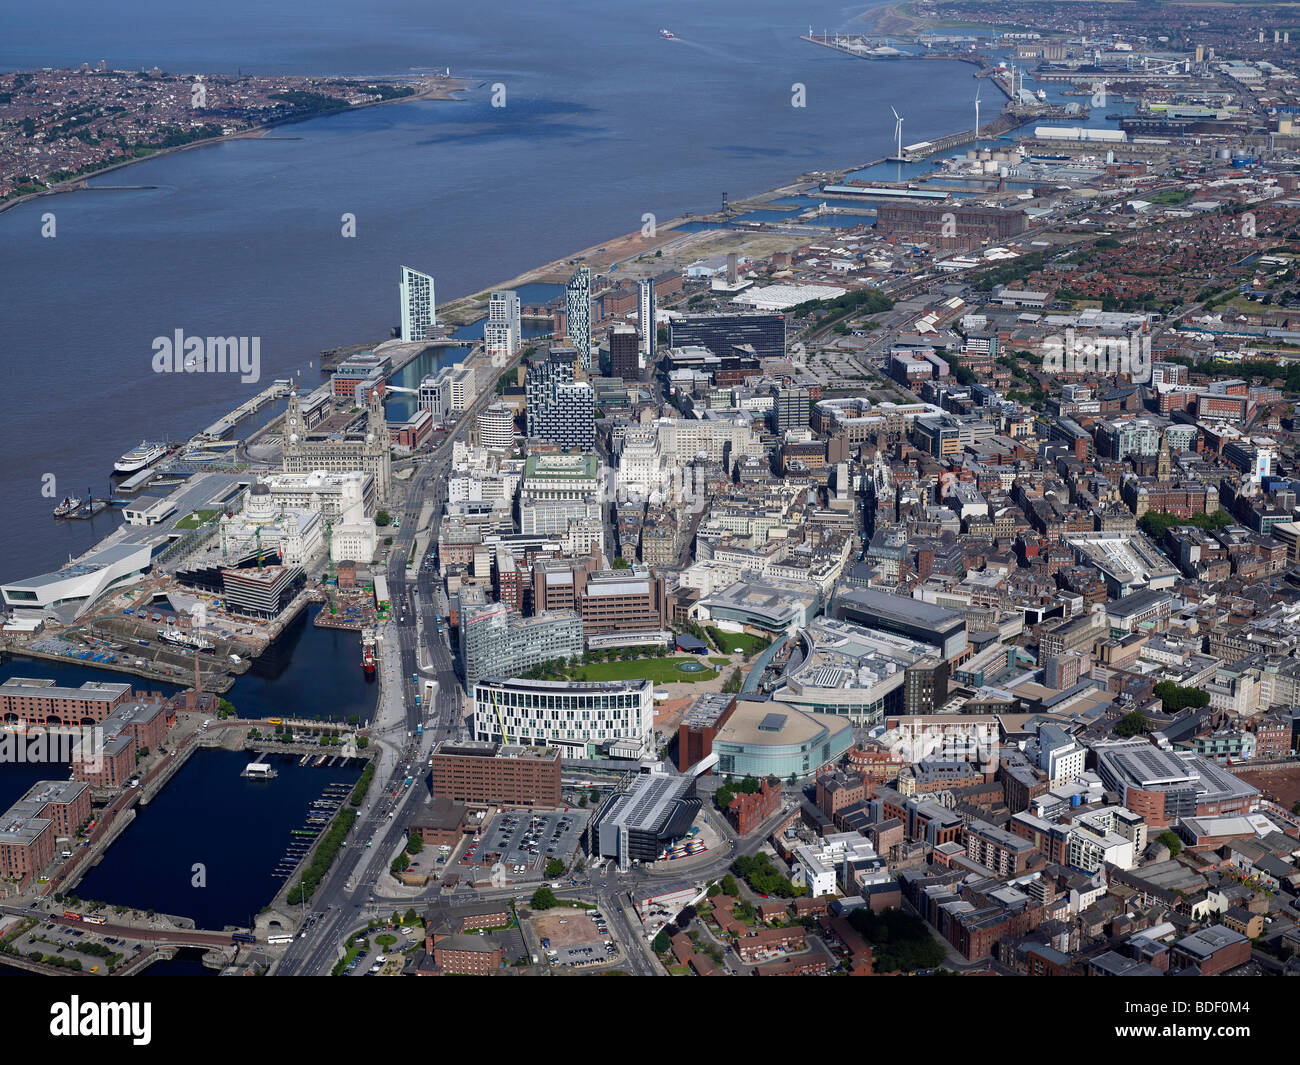 Aerial view of the River Mersey and river mouth, Liverpool, North West England, Summer 2009 - Stock Image